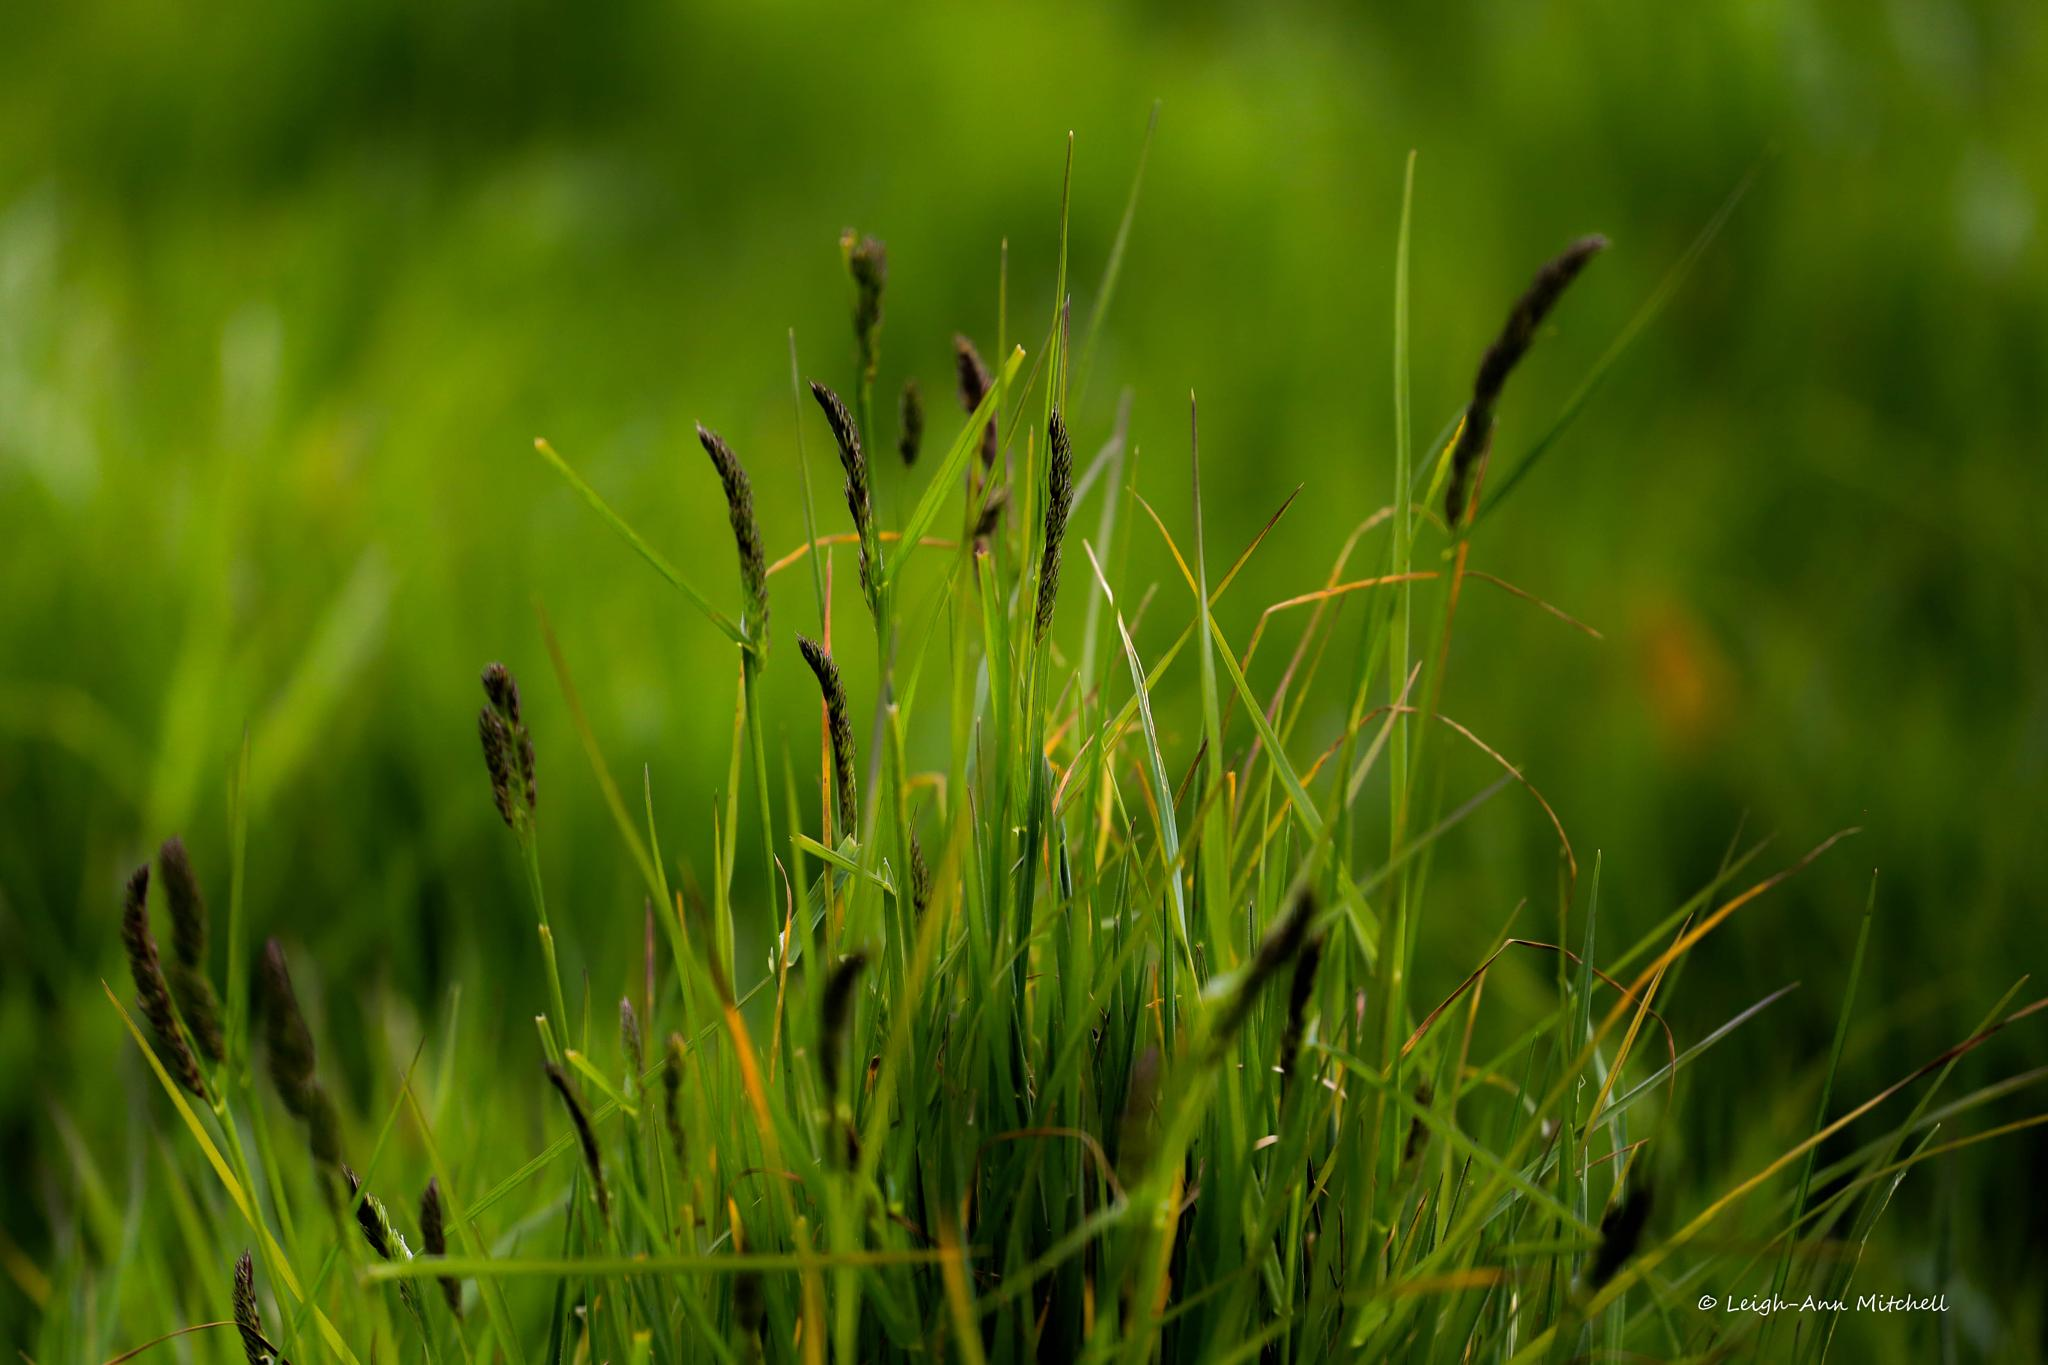 THE GREEN GRASS OF HOME by Leigh-Ann Mitchell